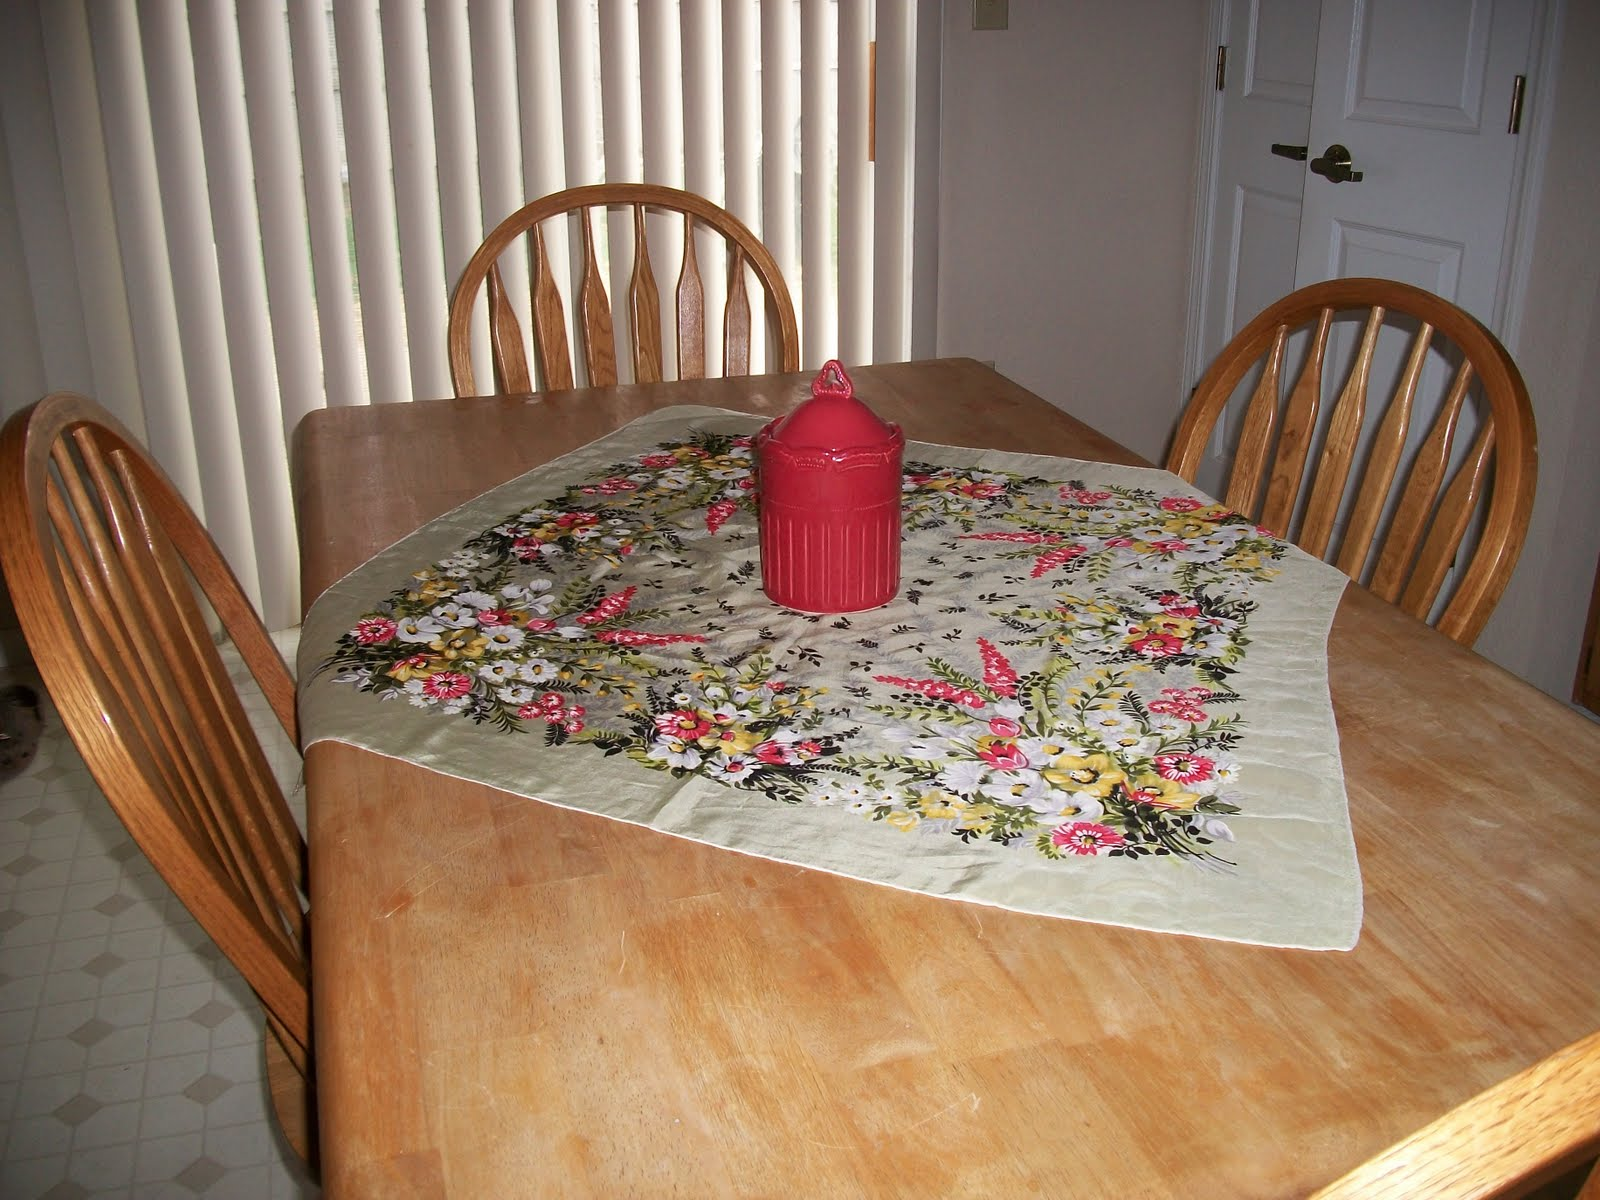 Easy Ideas For Spring Decorations For Your Table This One Is A Scarf